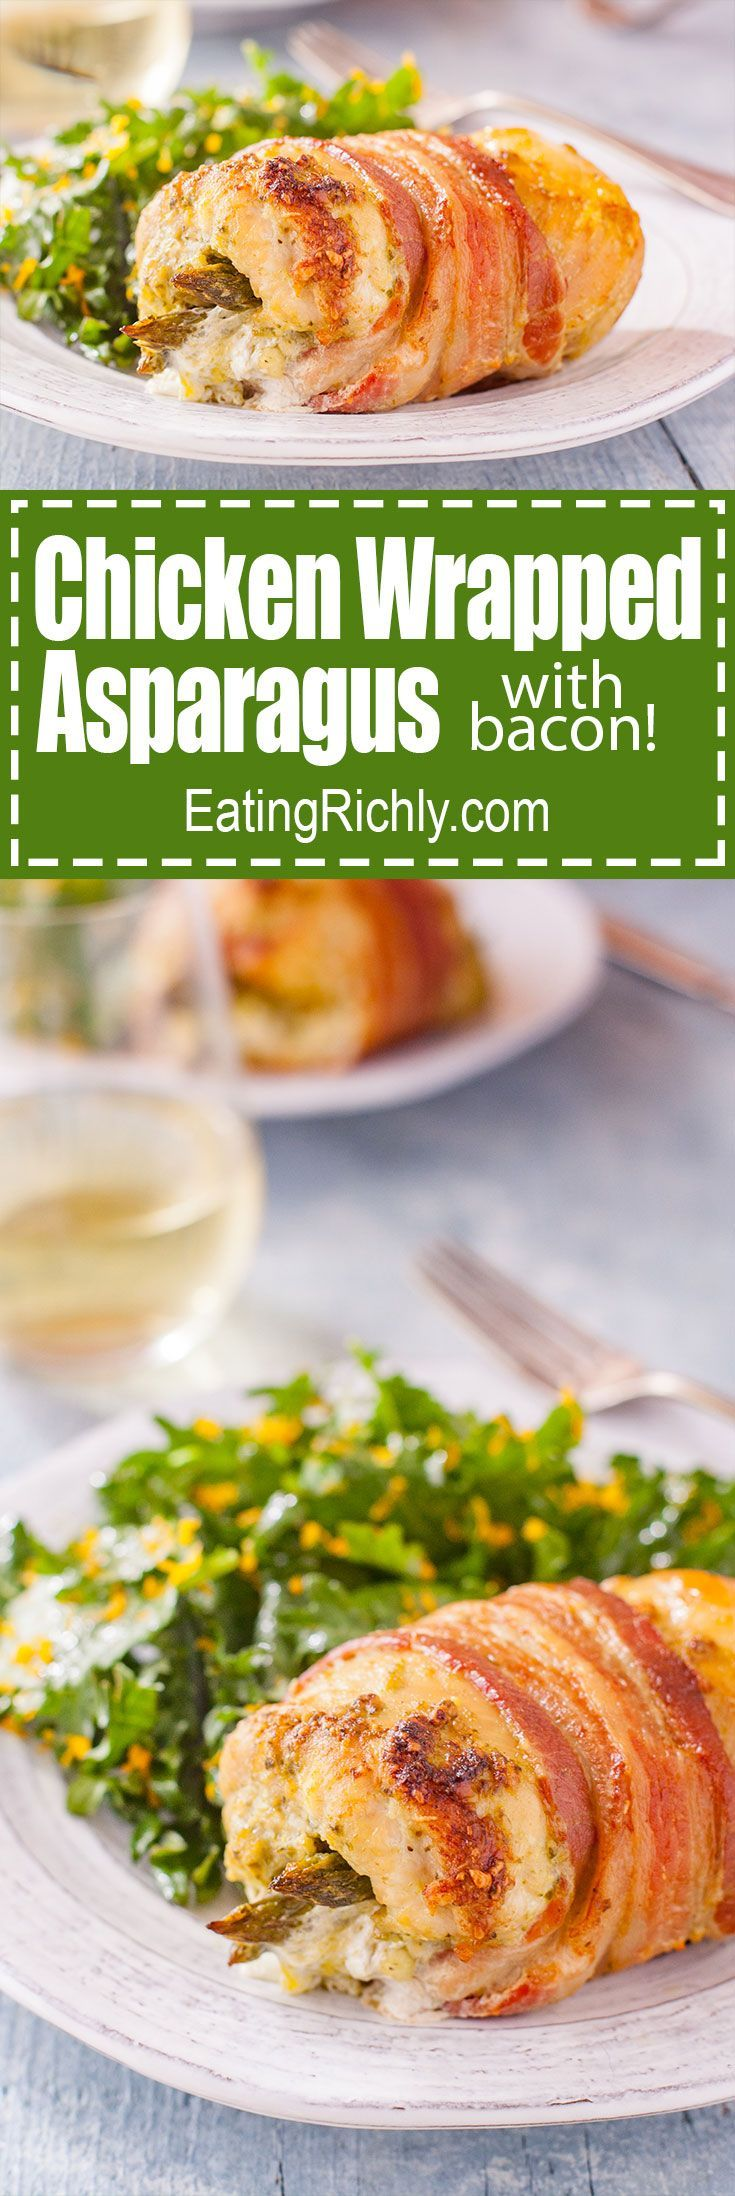 A few simple ingredients, in a beautiful presentation, make bacon and chicken wrapped asparagus perfect for a holiday dinner, or everyday meal. From EatingRichly.com via @eatingrichly